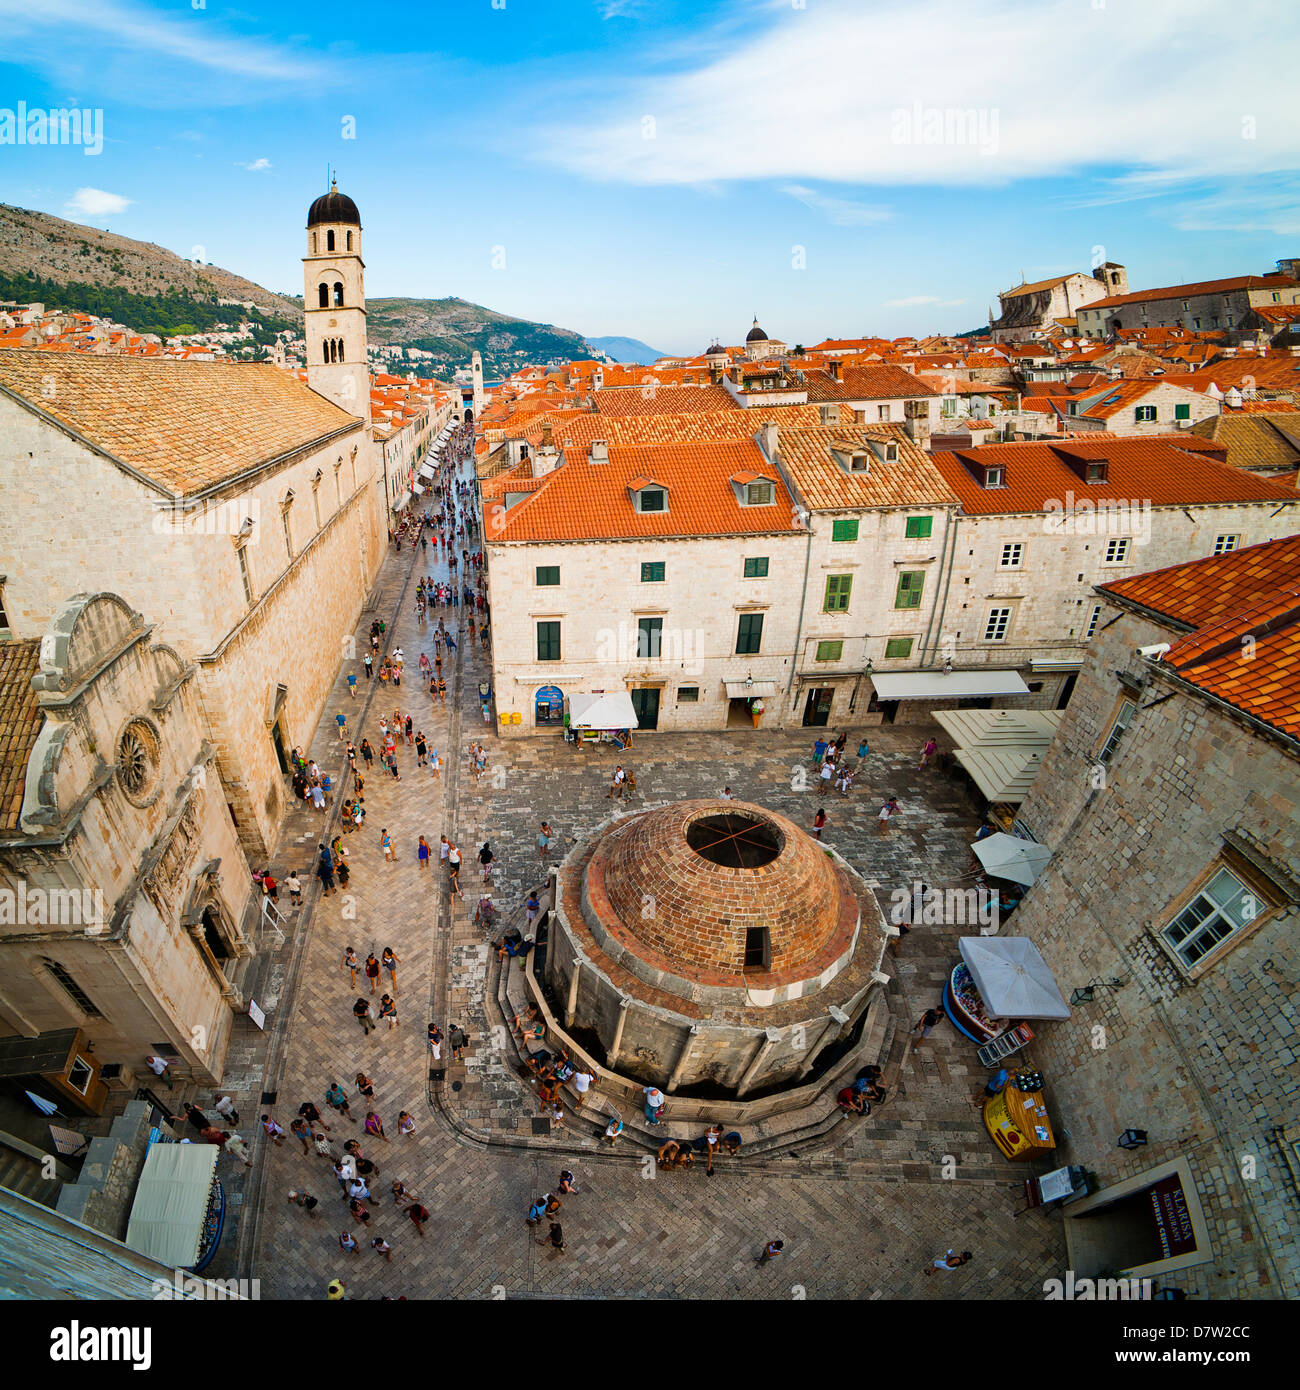 Big Onforio Fountain, Franciscan Monastery and City Bell Tower, UNESCO World Heritage Site, Dubrovnik, Dalmatian - Stock Image